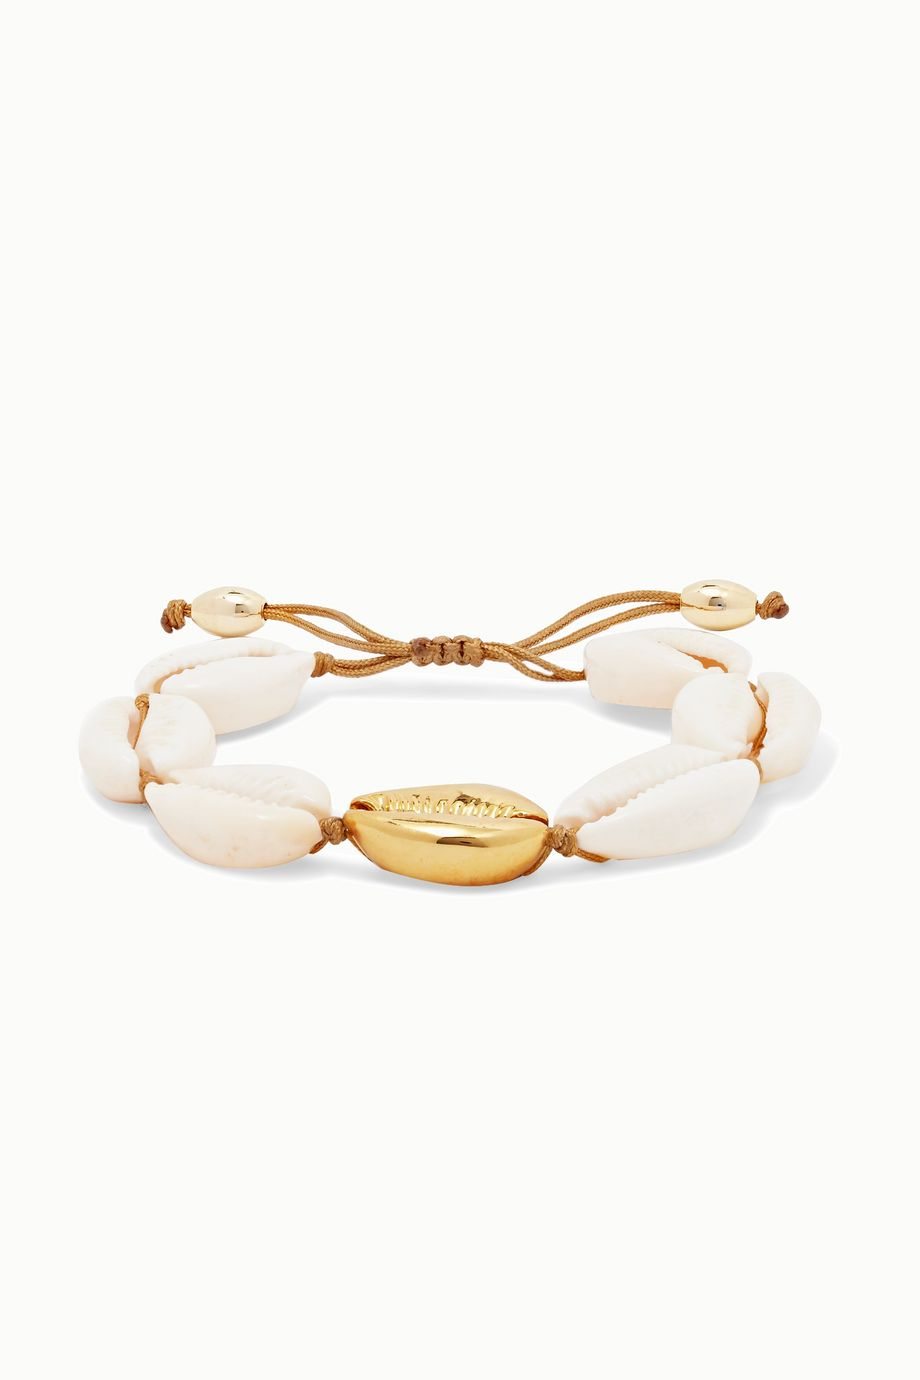 Tohum Large Puka gold-plated and shell bracelet